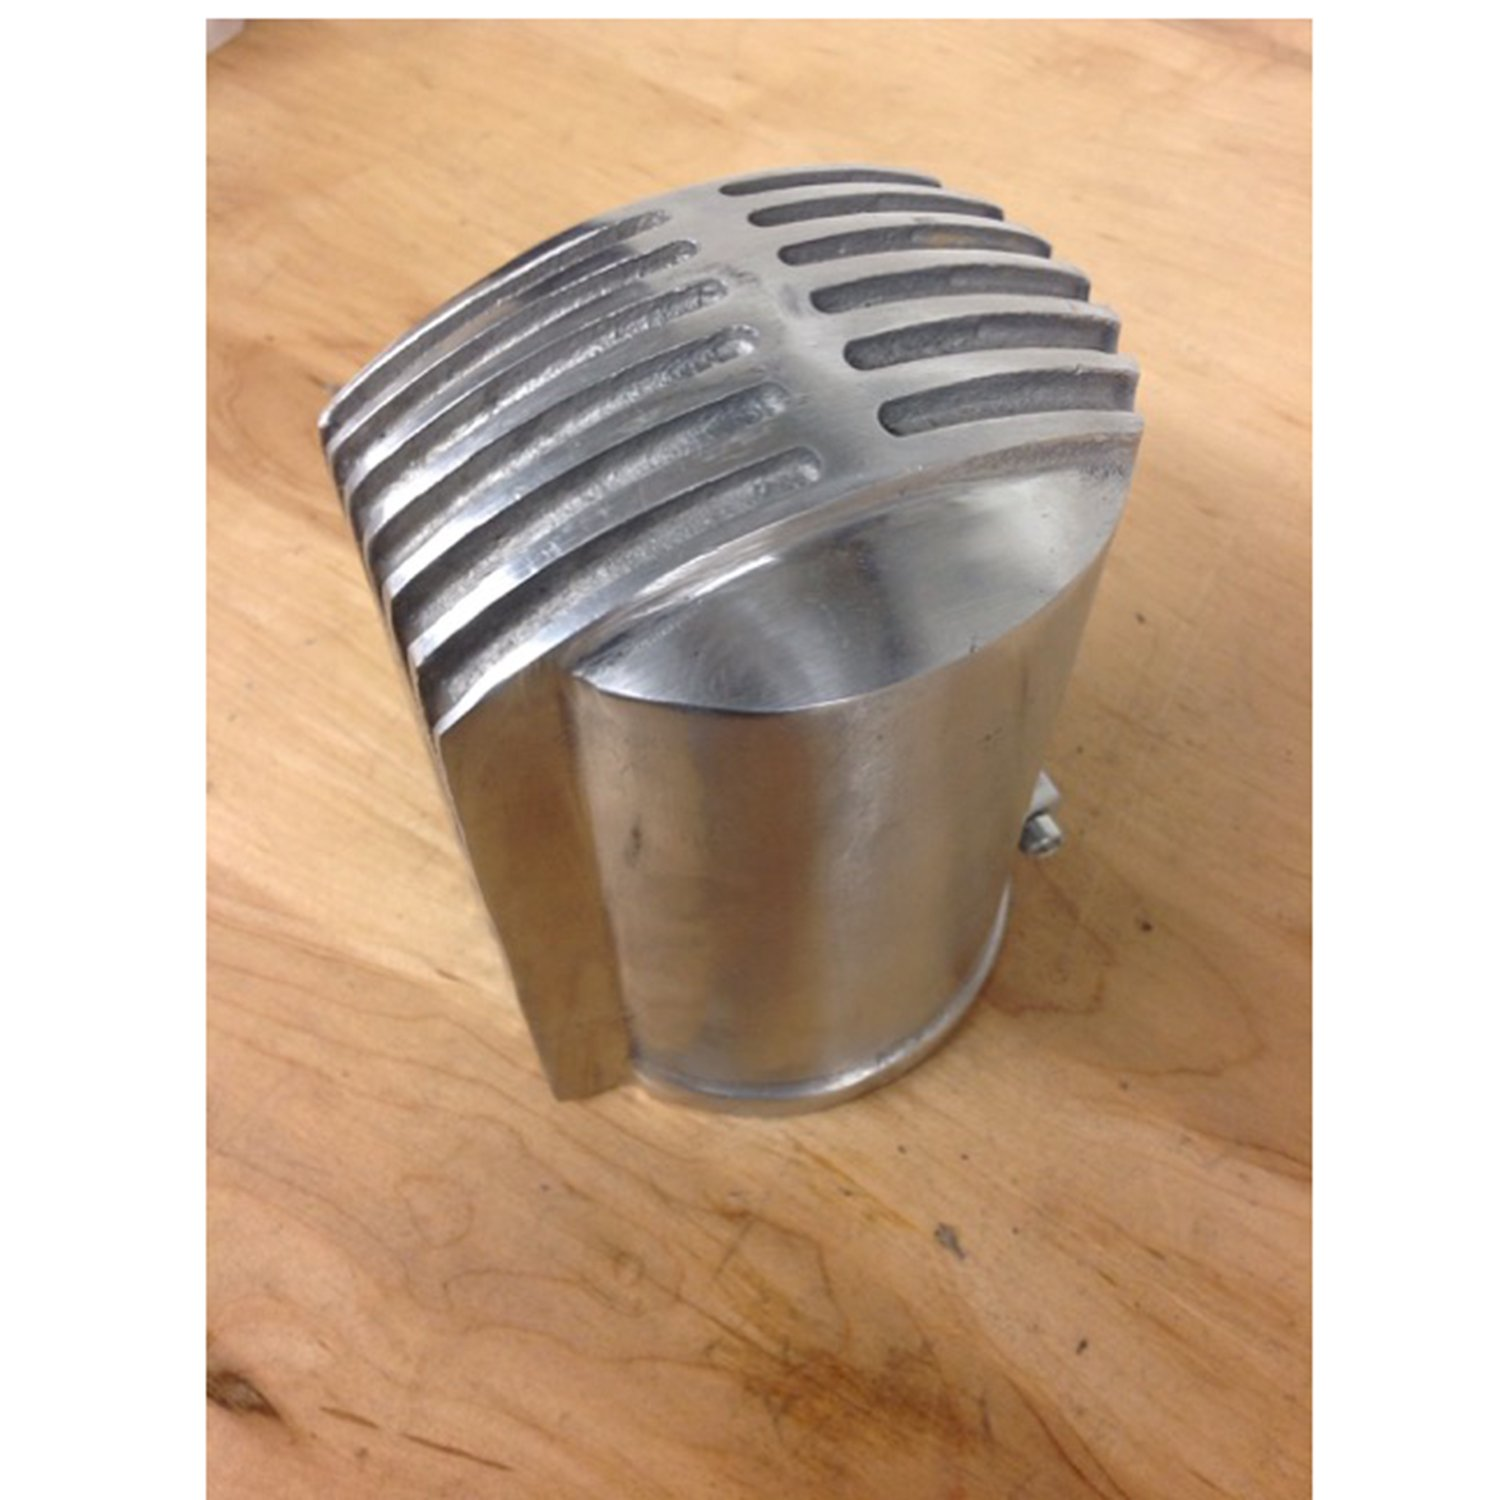 1957 Mcculloch Supercharger: Canister Oil Filter Vintage Ford